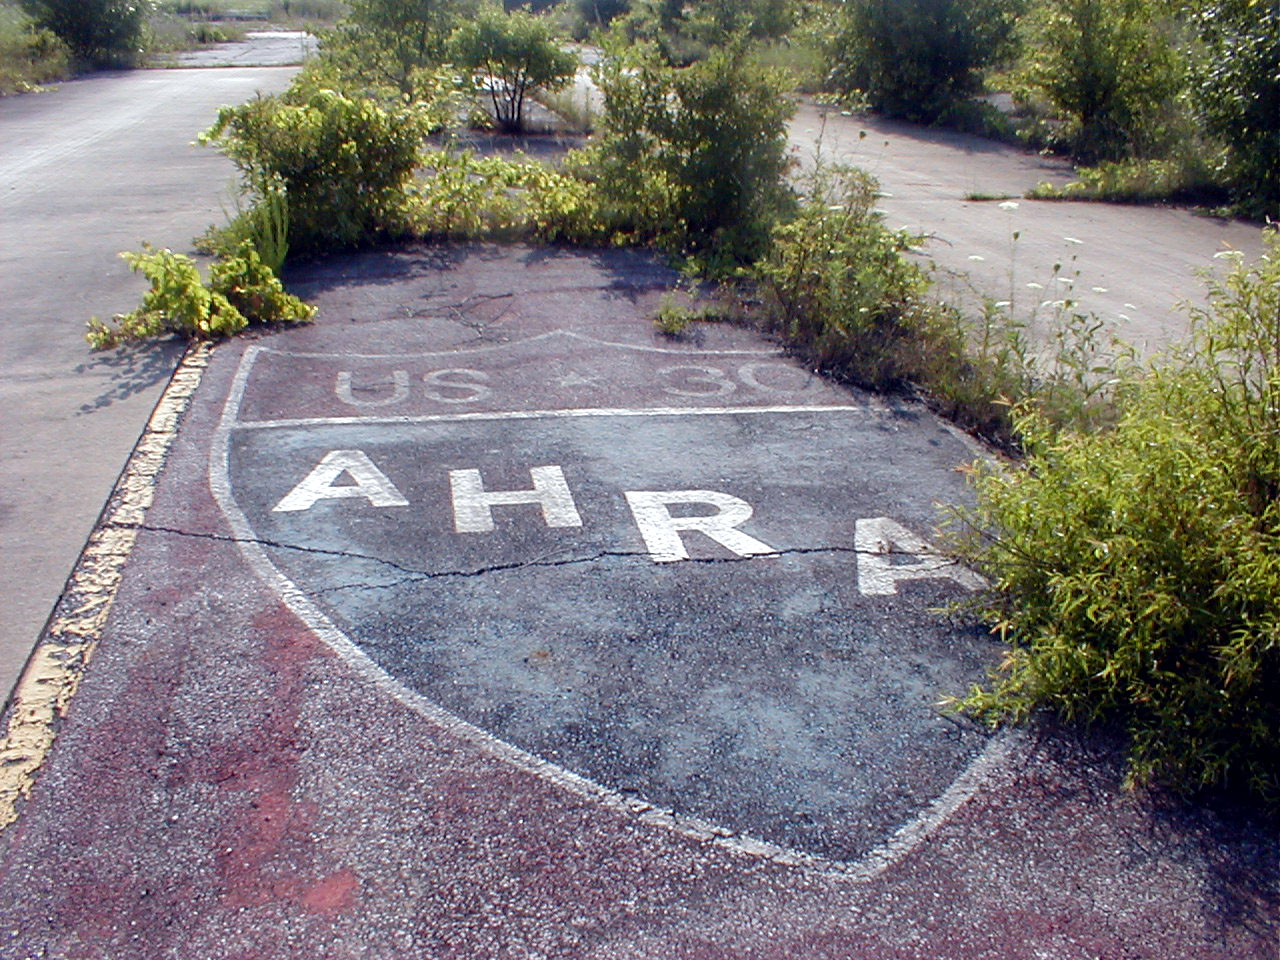 Cool Drag Racing History Unearthed: The AHRA vs Larry Carrier Court Papers